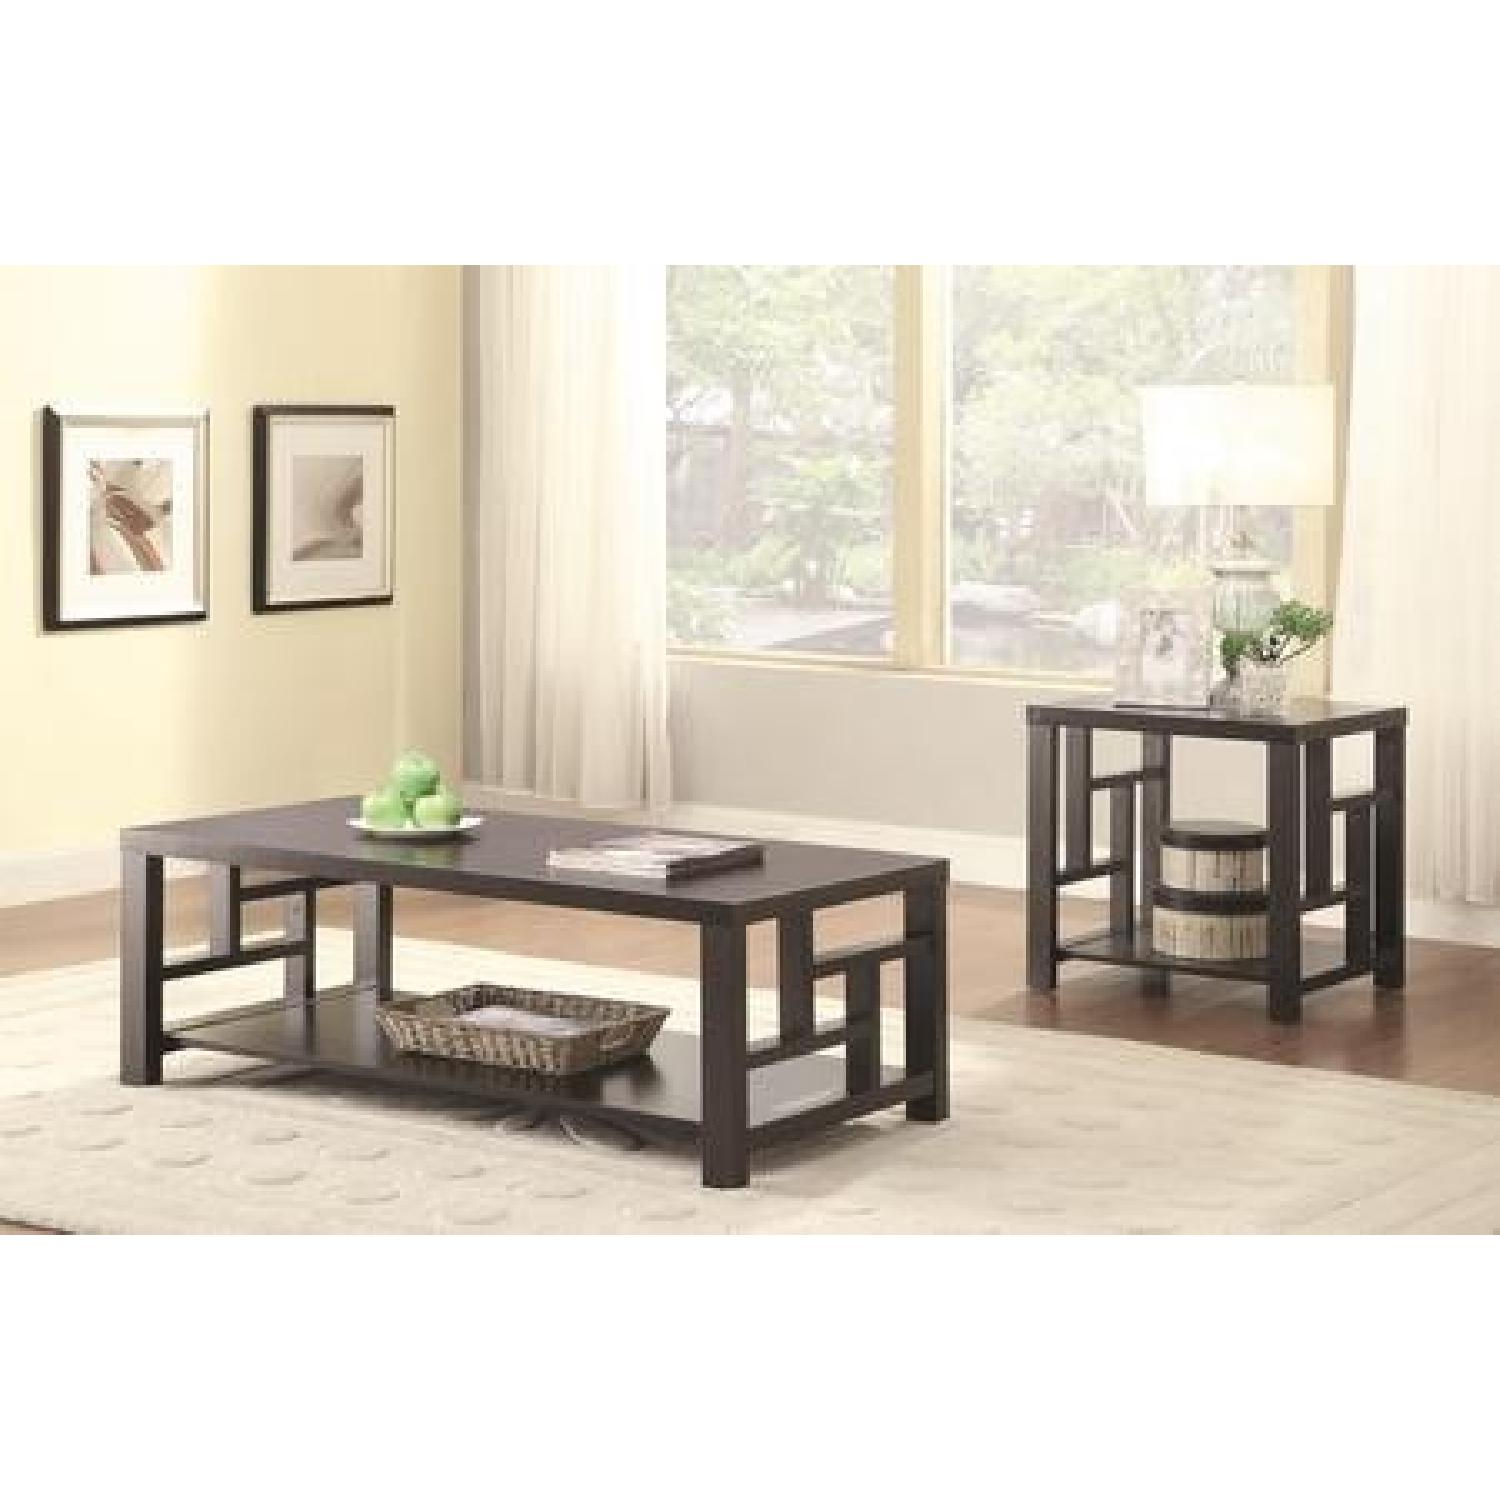 Cappucino Asian Style Coffee Table-0